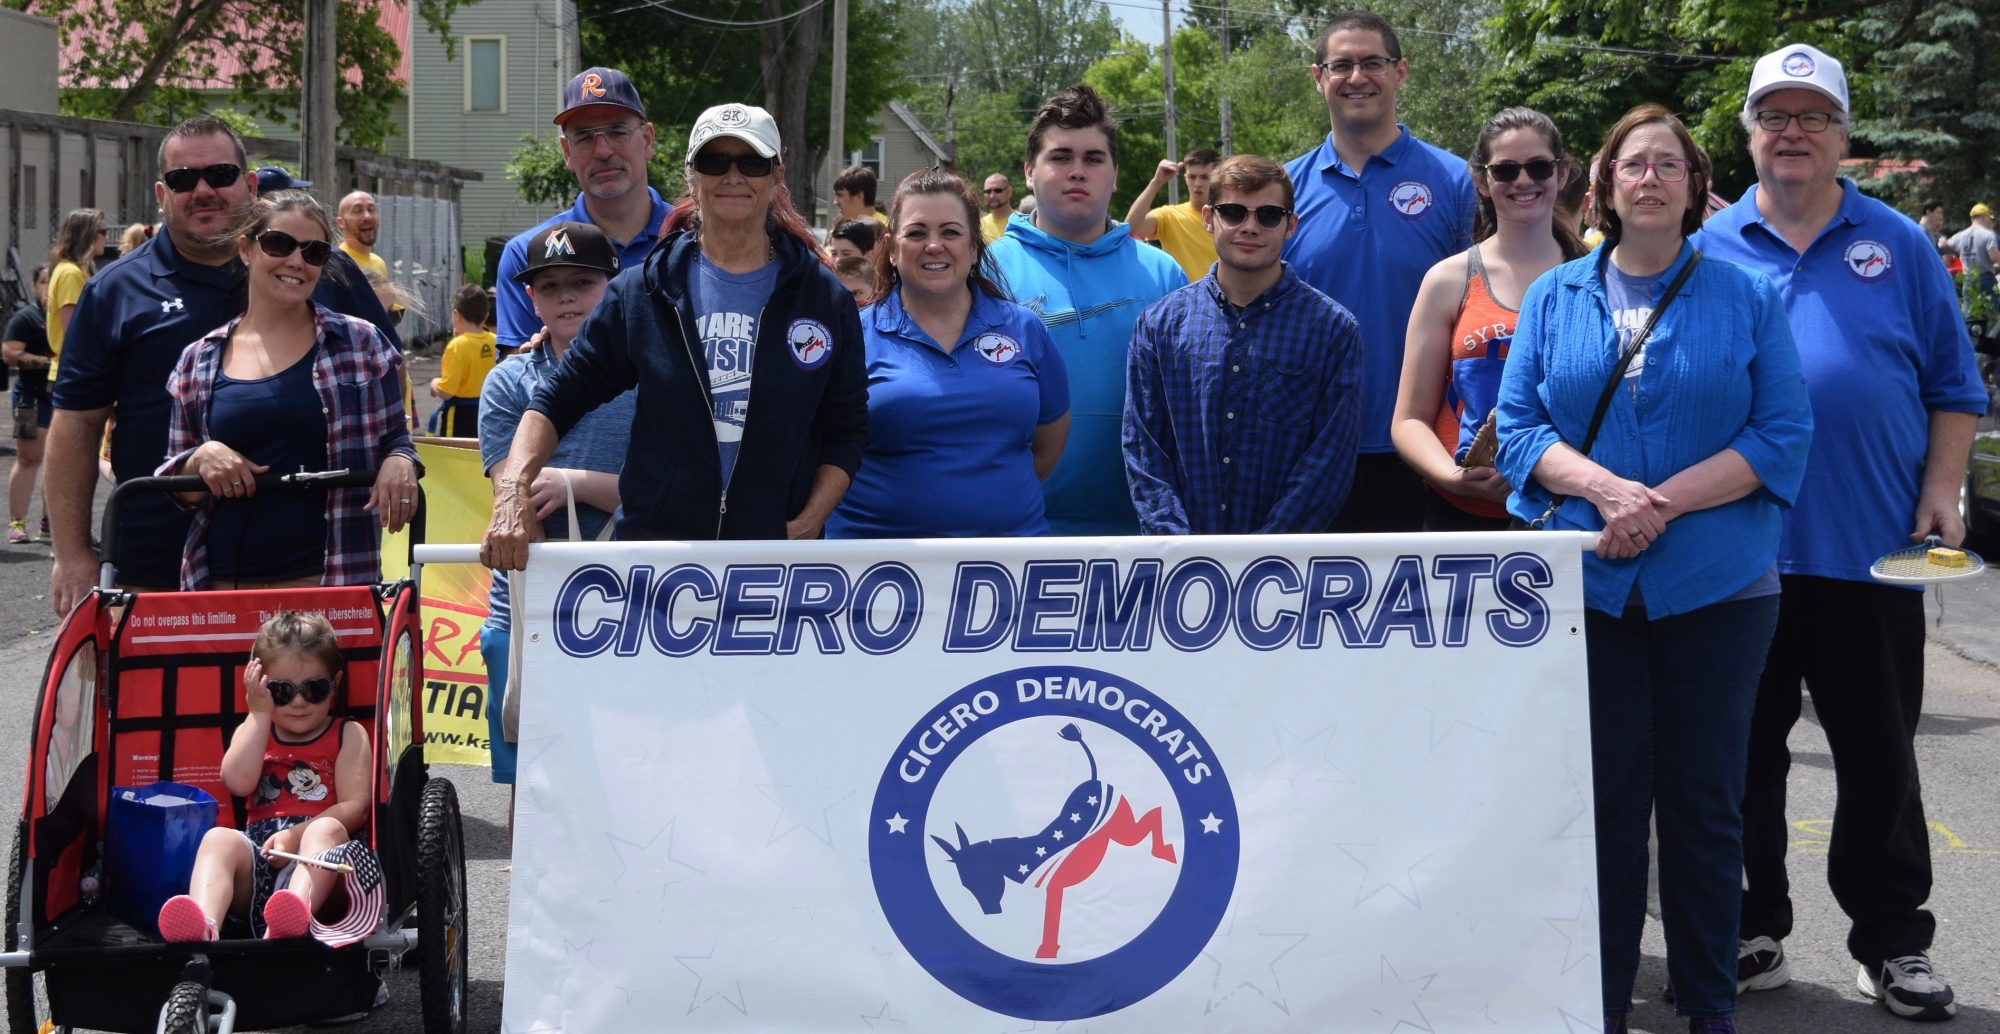 Cicero Democratic Committee